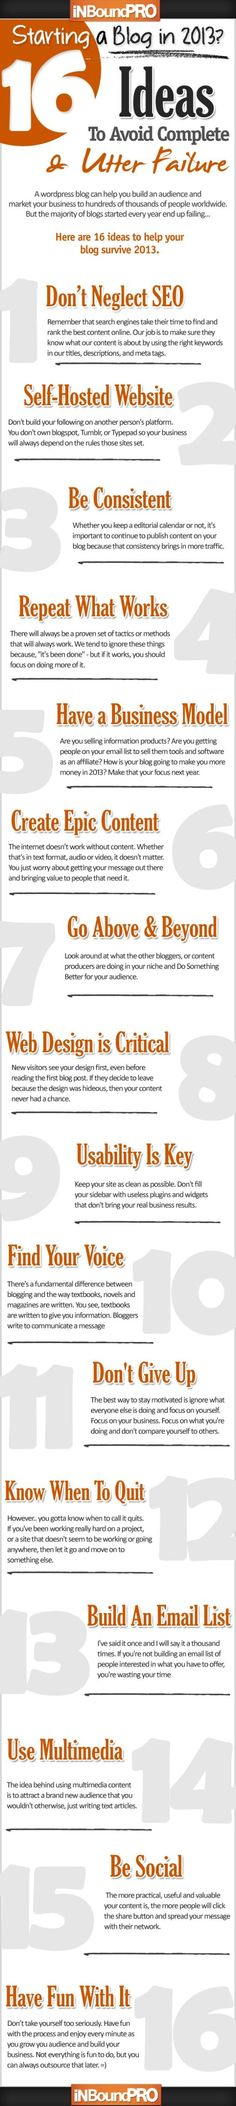 Starting a Blog in 2013? 16 Ideas To Avoid Complete and Utter Failure in this infographic.